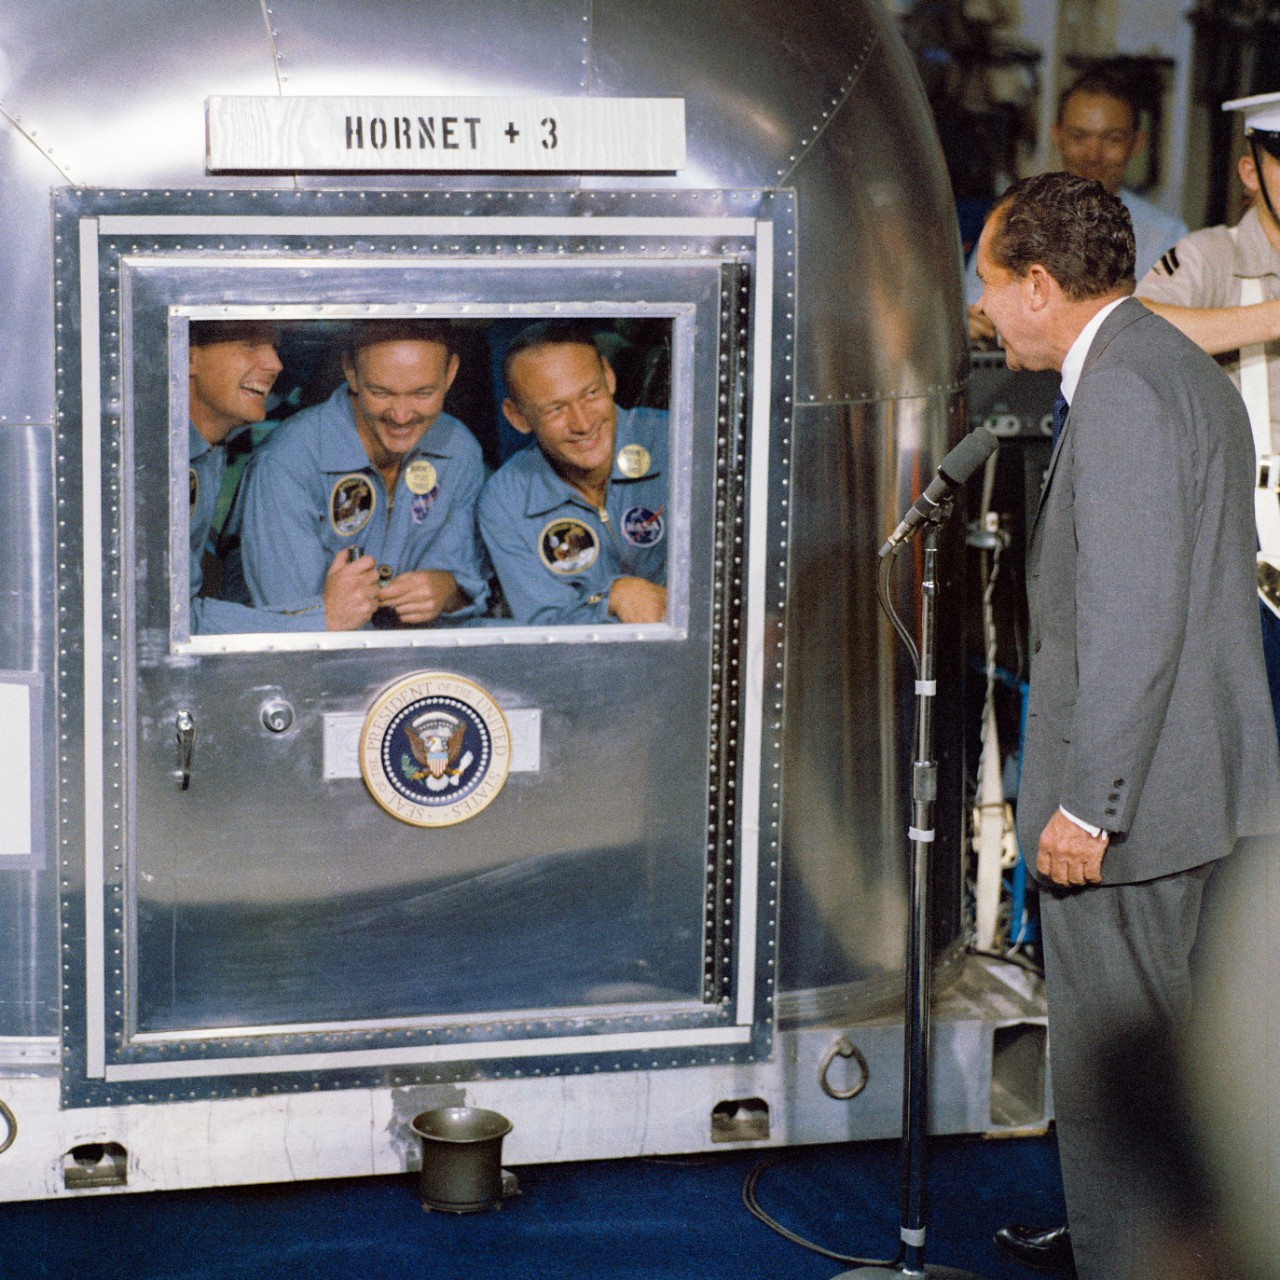 <p>President Richard M. Nixon was in the central Pacific recovery area to welcome the Apollo 11 astronauts aboard USS <i>Hornet</i>, prime recovery ship for the historic Apollo 11 lunar landing mission.</p>